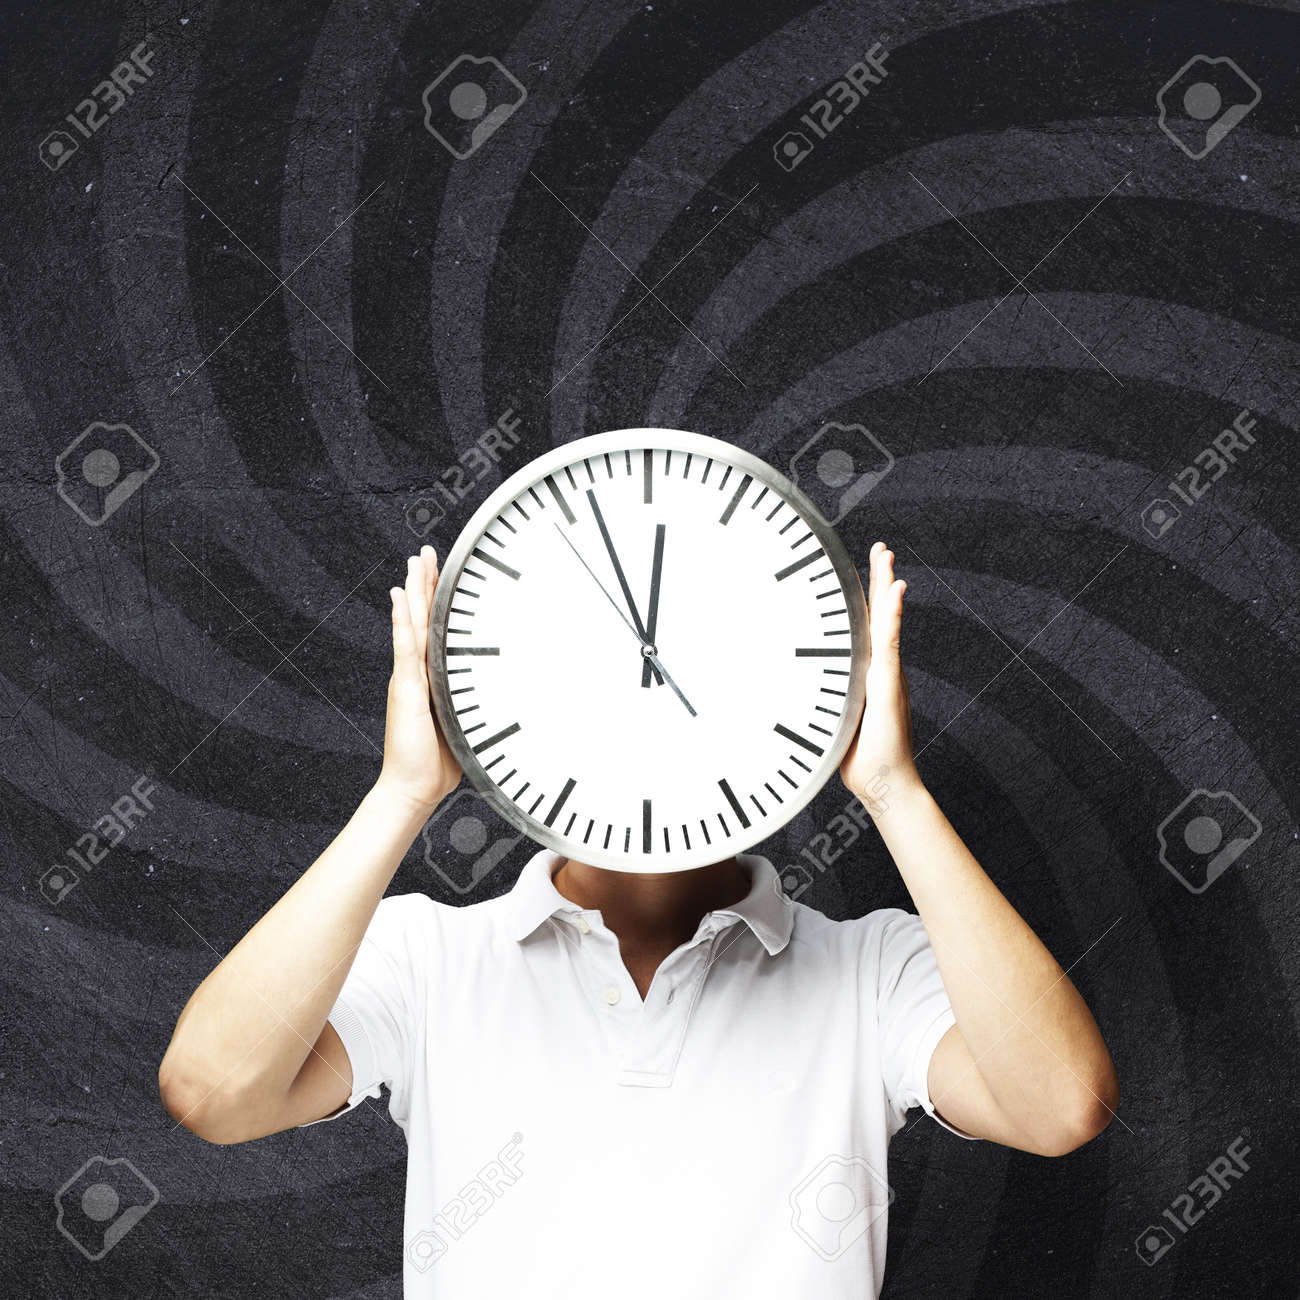 young man hiding his face behind a clock against an abstract background Stock Photo - 13485741